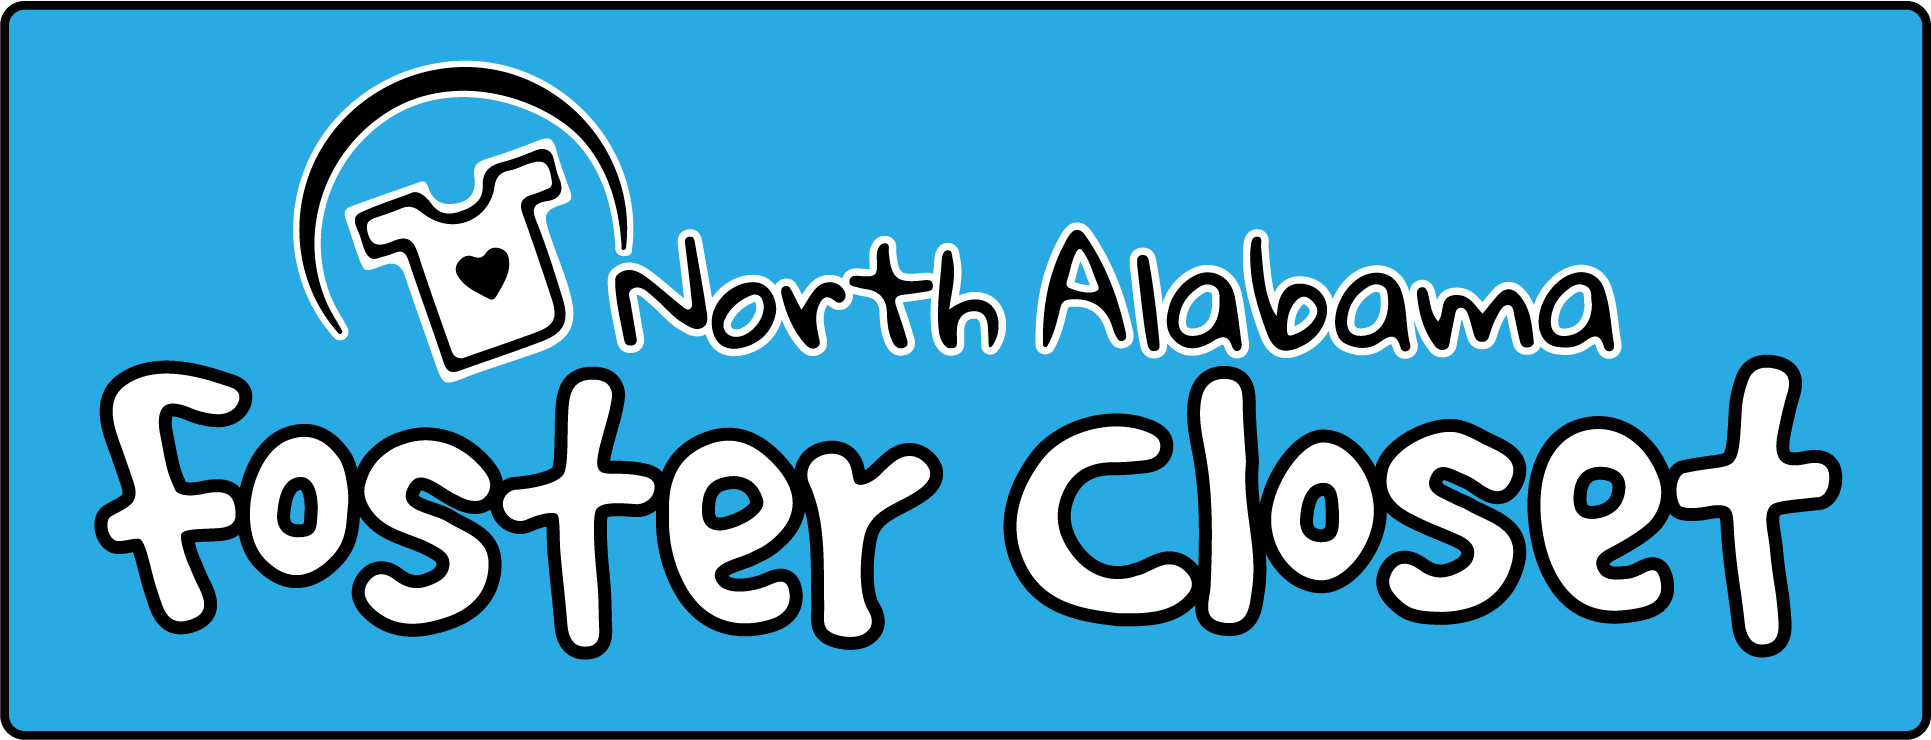 Fostering Connections - What is Fostering Connections and how is it related to the North Alabama Foster Closet?Fostering Connections is the non-profit birthed out of the grassroots effort of foster and adoptive families caring for one another via what was initially known as the